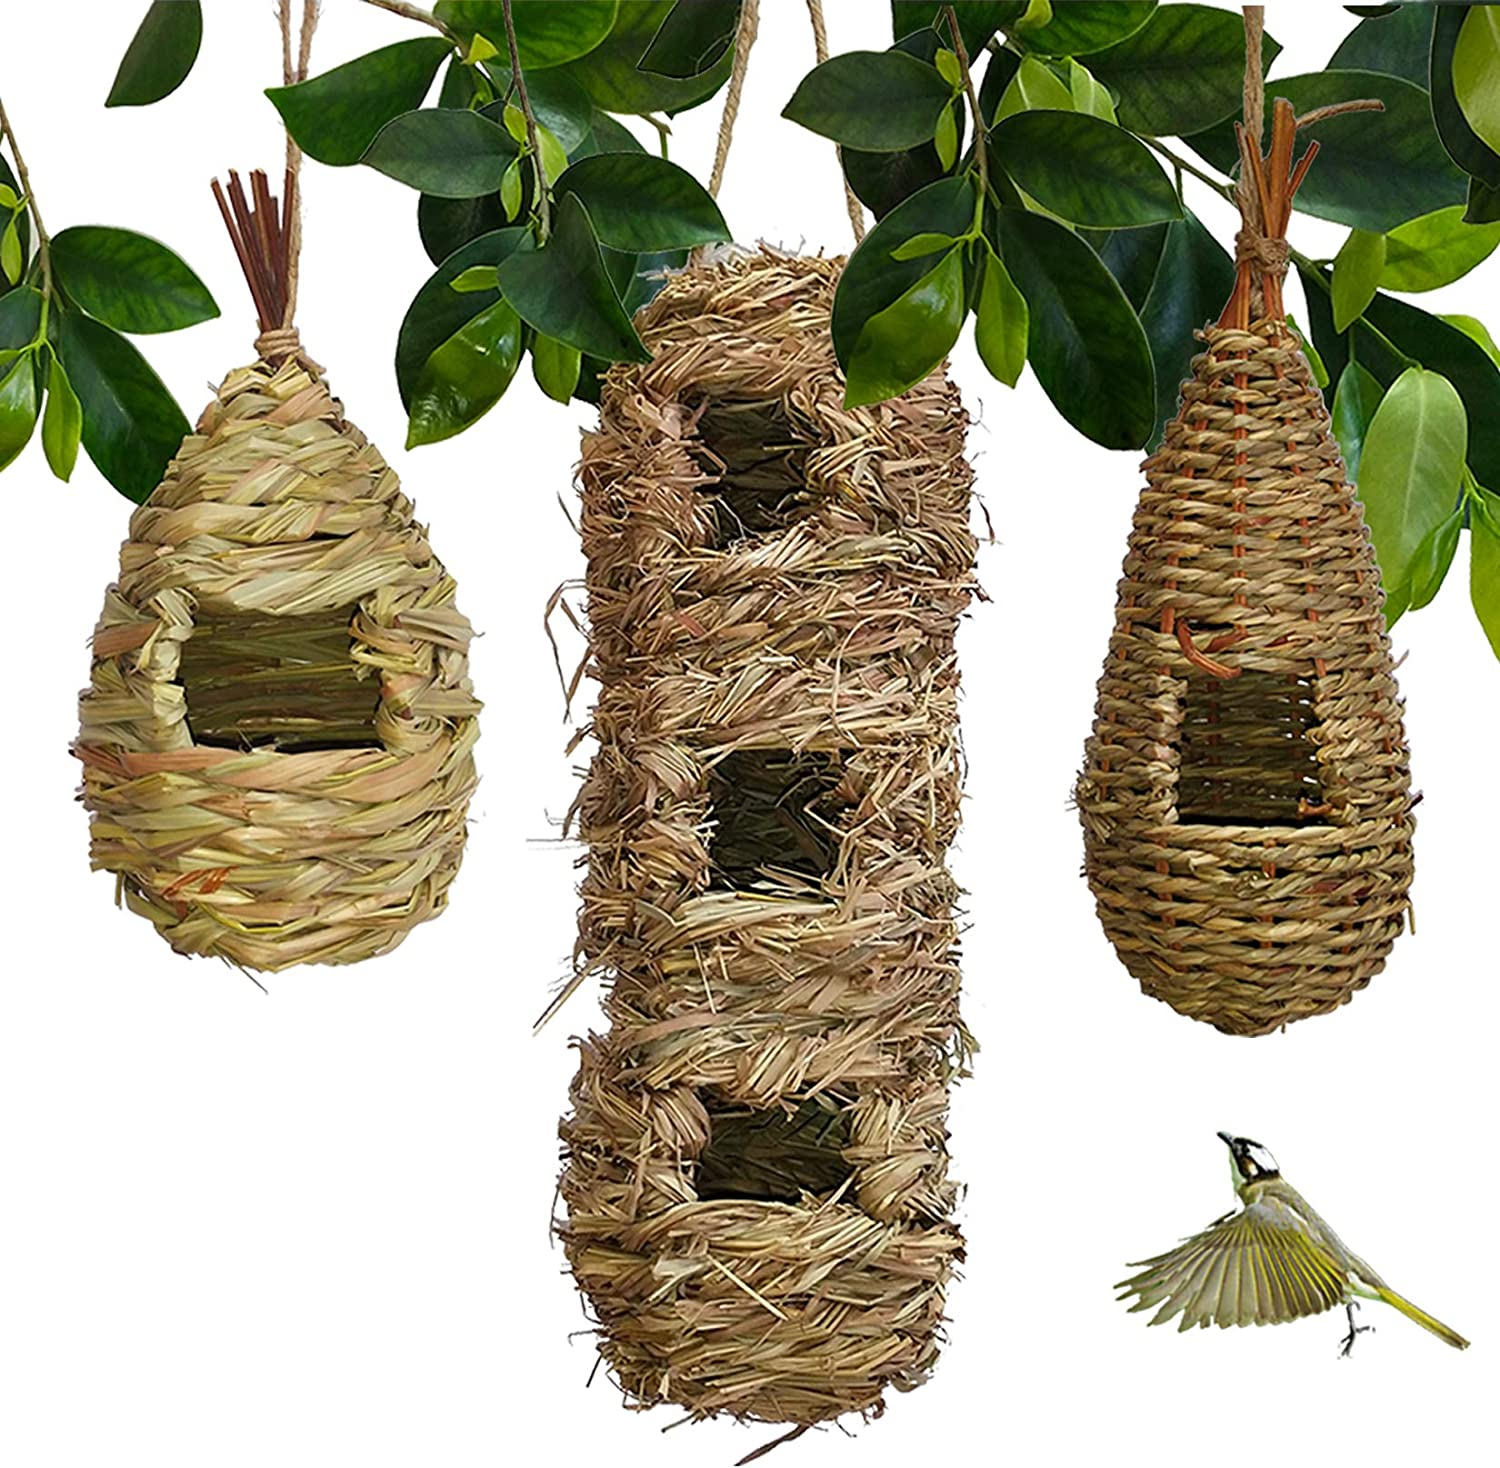 Hand-Woven Teardrop Shaped Eco-Friendly Birds Cages Nest Roostin Seattle Mall Limited price sale